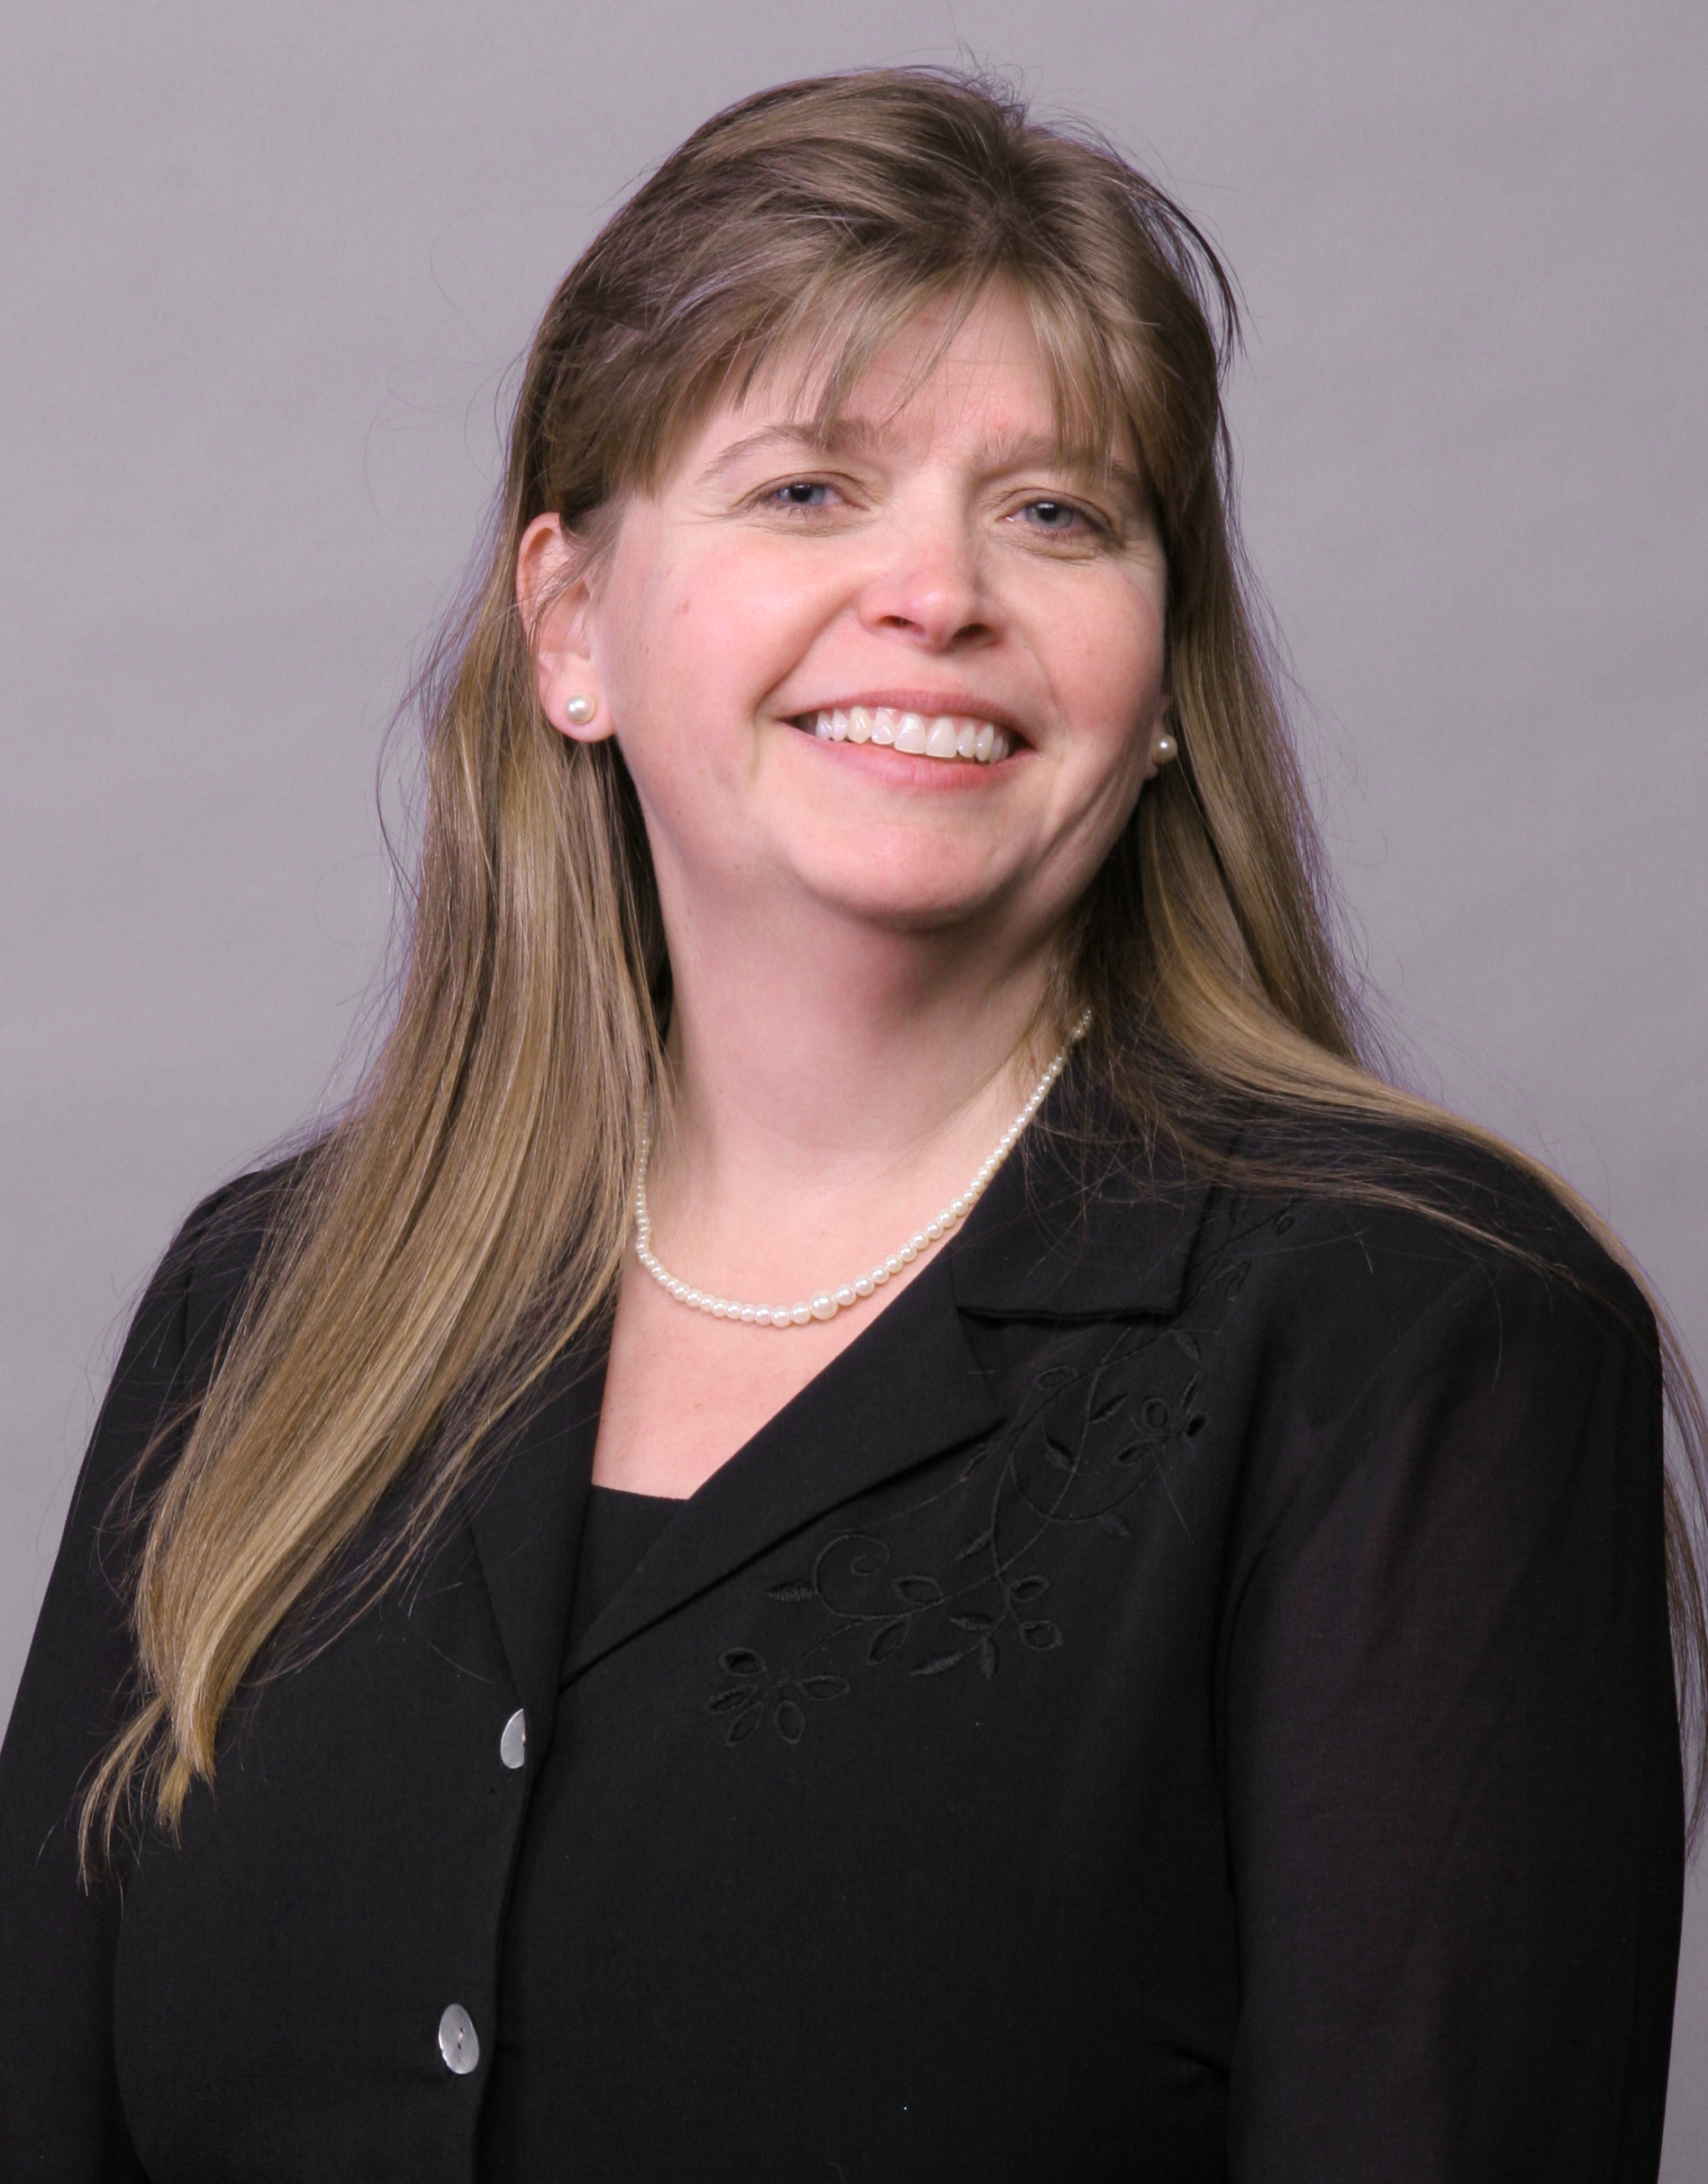 sally gaynor-knecht,   Insurance Agent      Representing American National